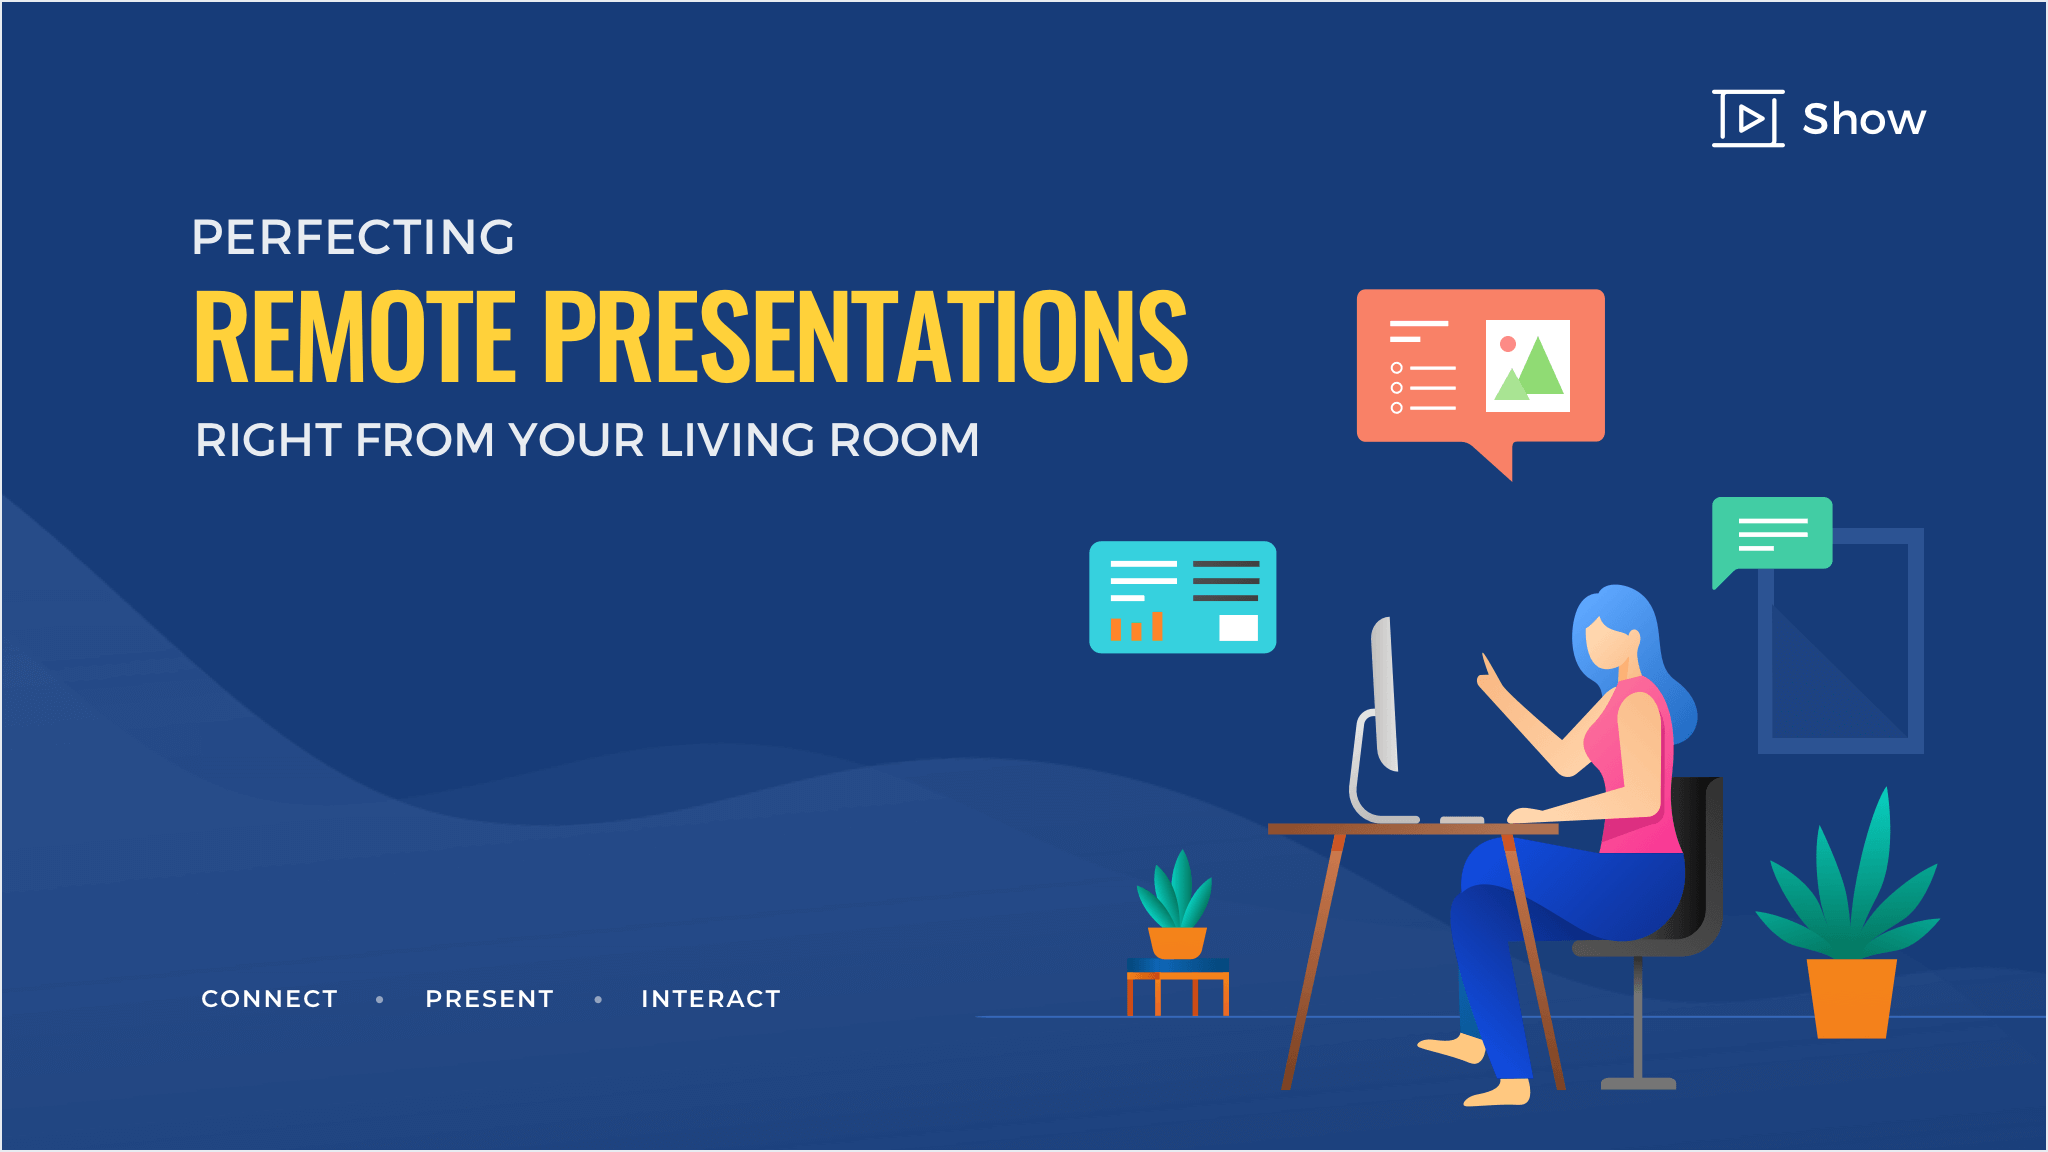 Perfecting remote presentations right from your living room